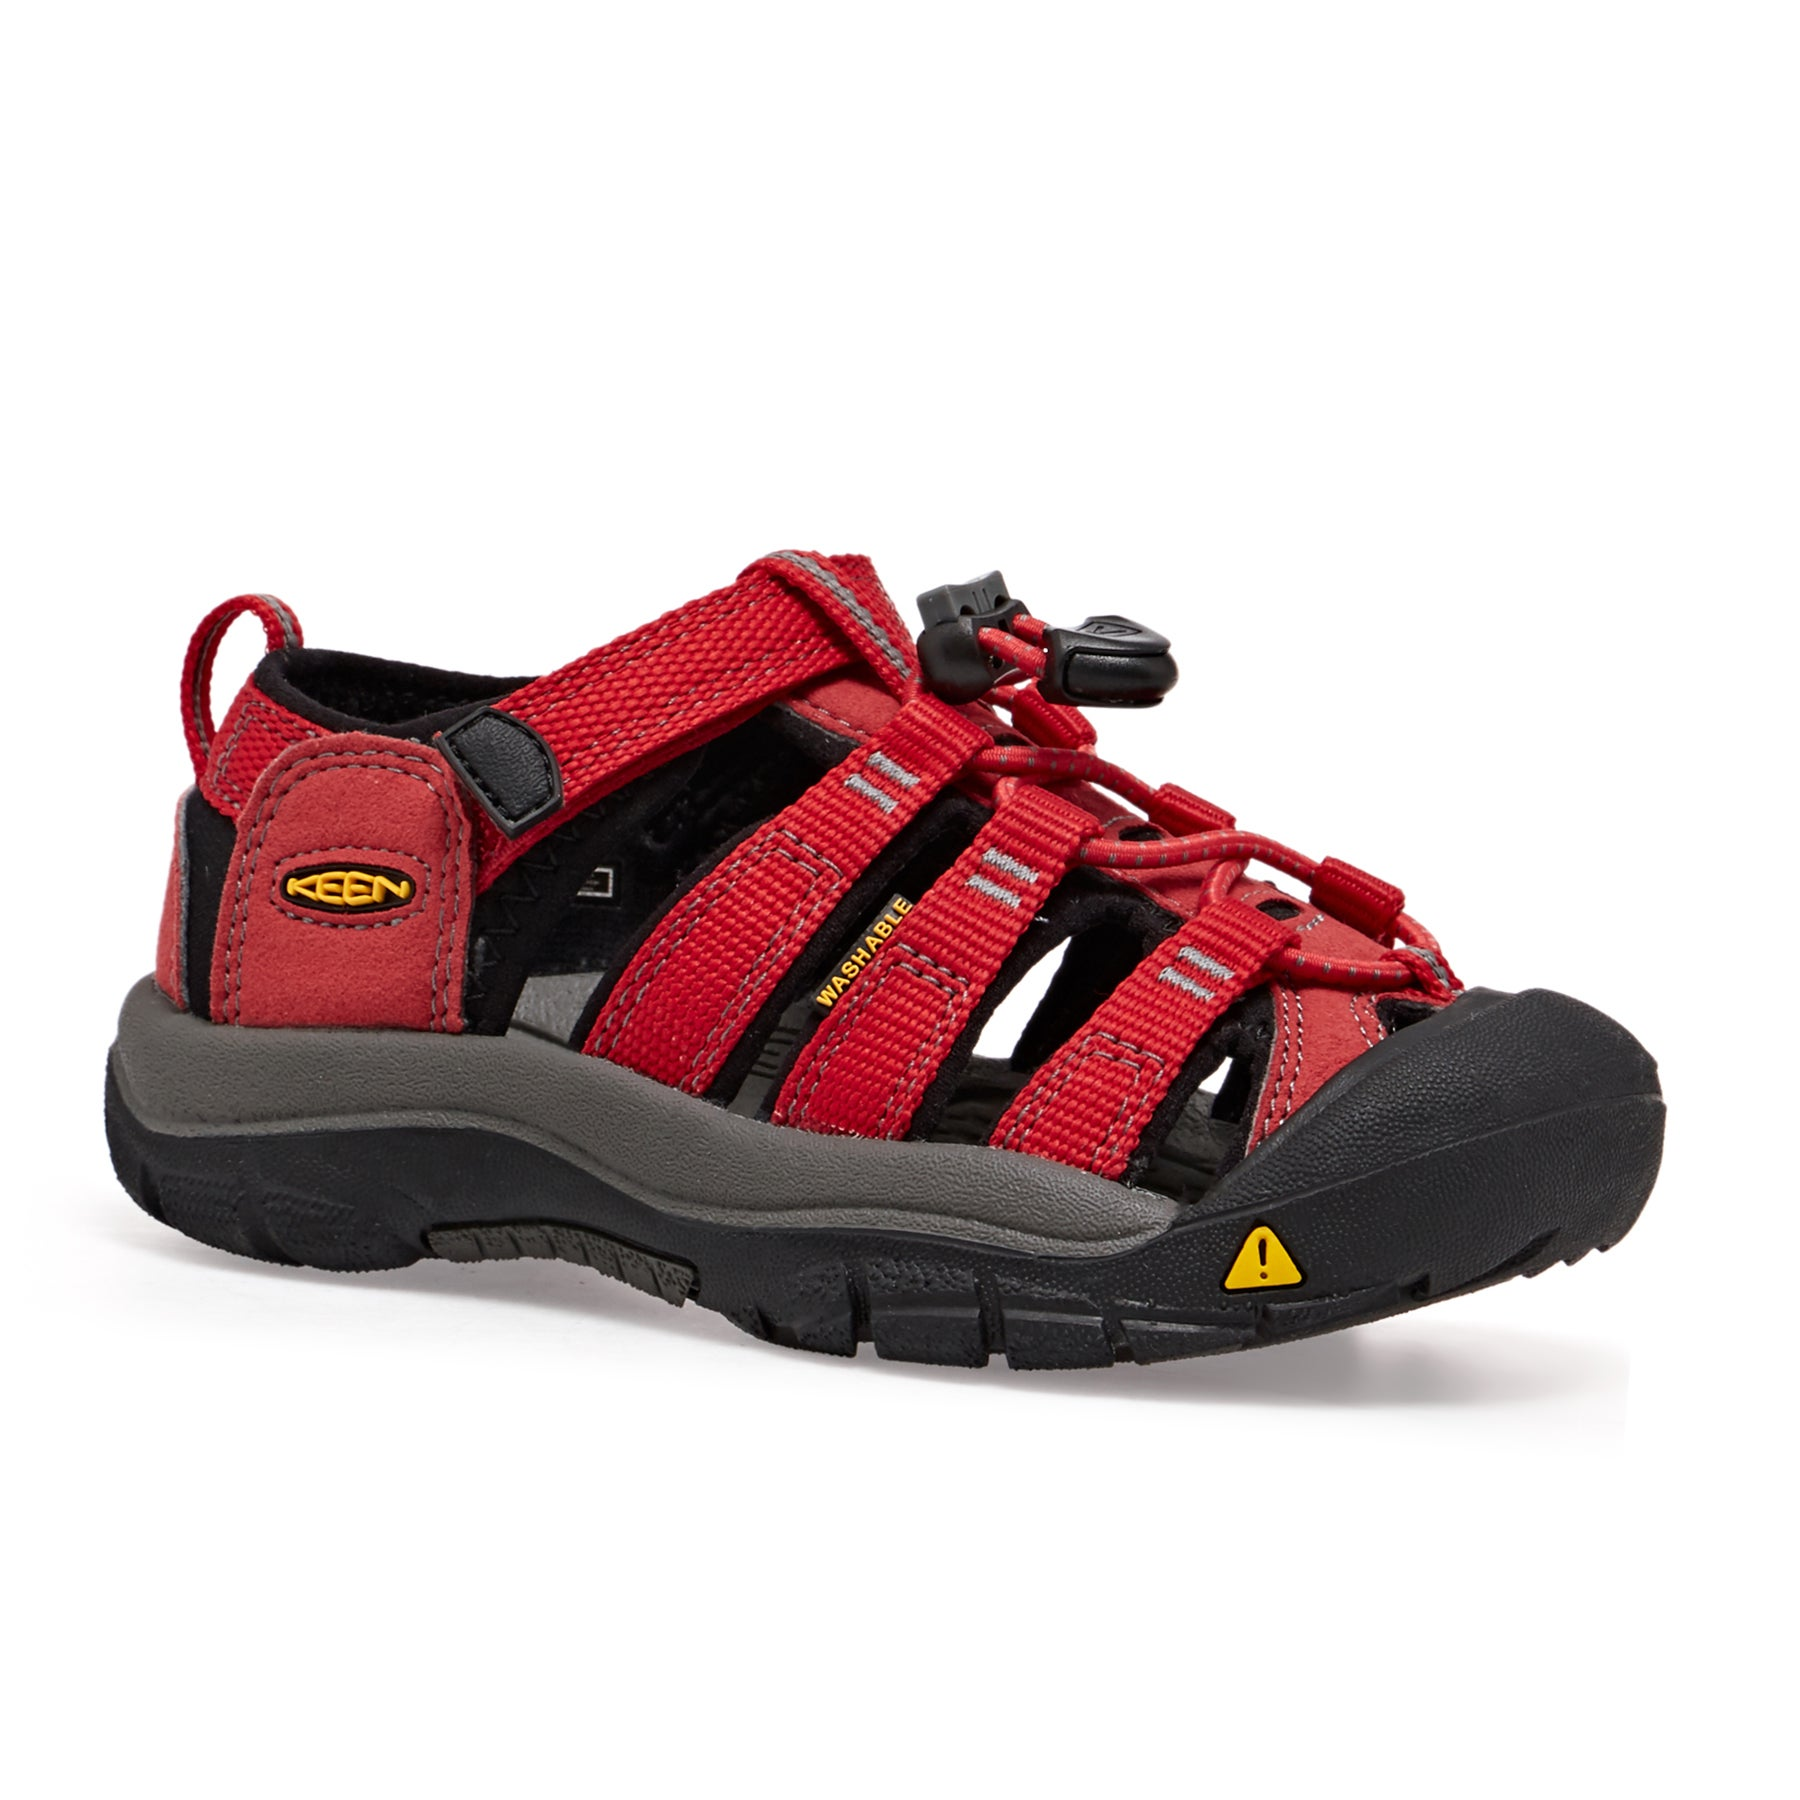 Keen Newport H2 Kids Sandals - Ribbon Red Gargoyle